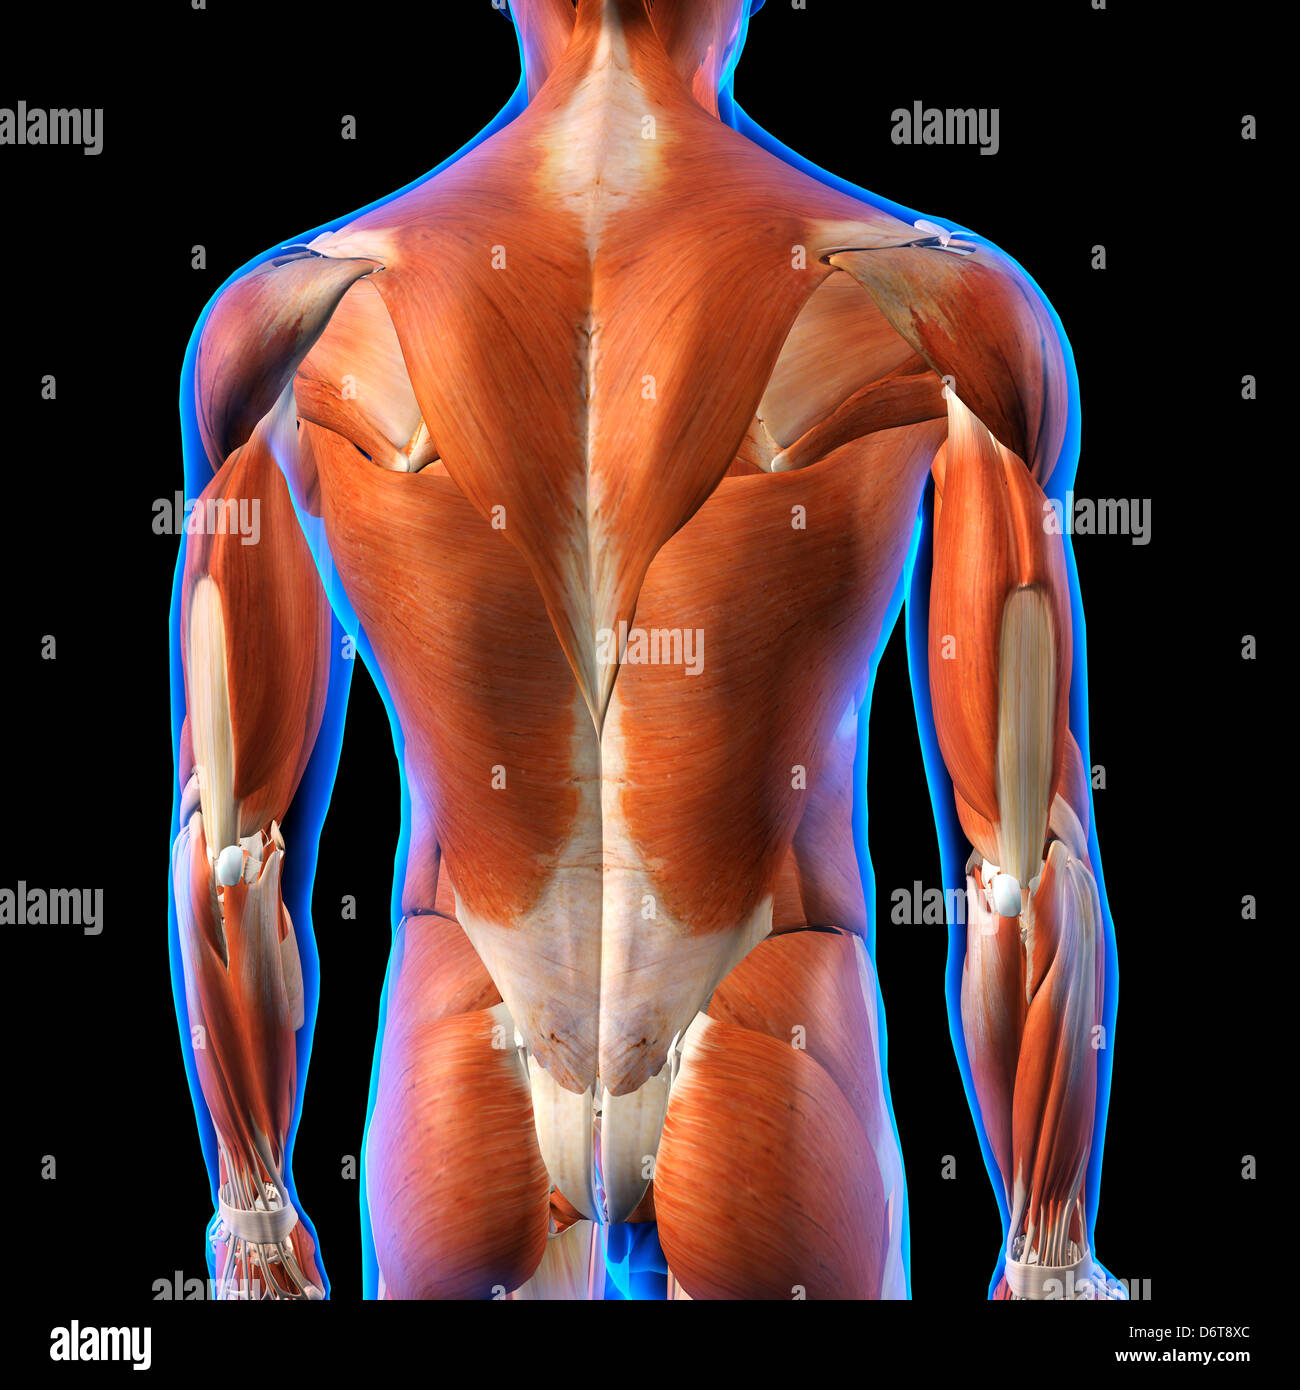 Rear View Of Male Back Muscles Anatomy In Blue X Ray Outline Full